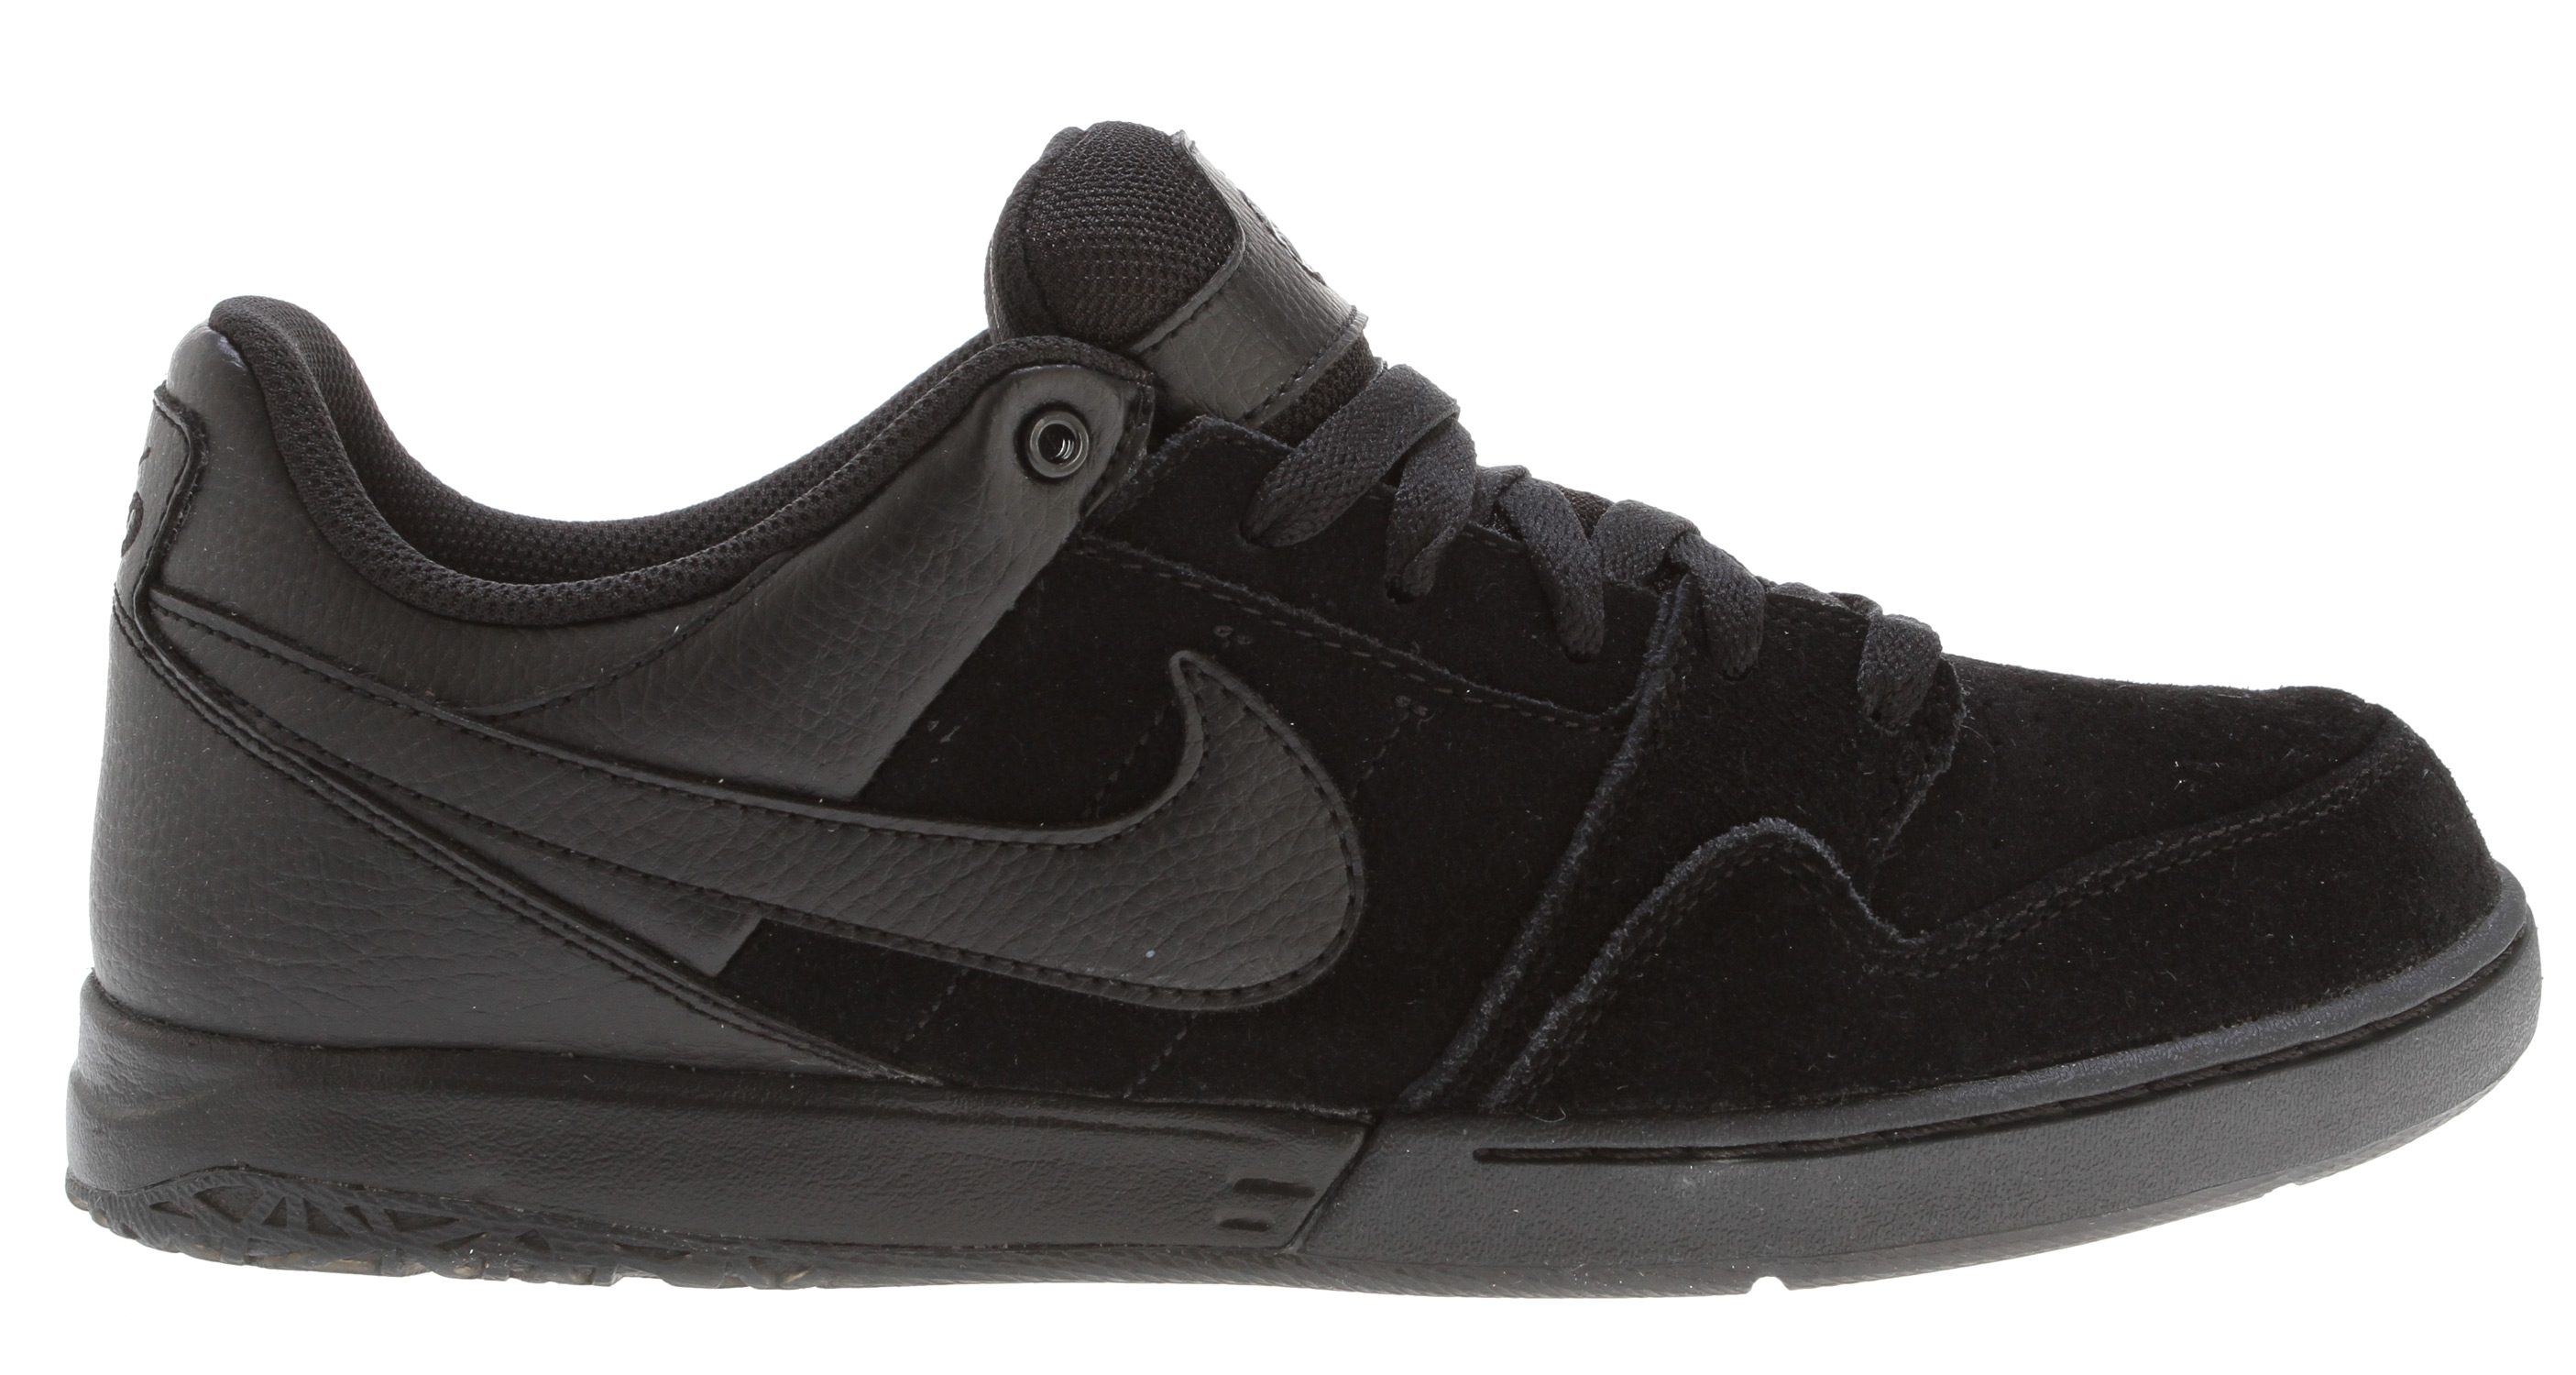 Skateboard Key Features of the Nike Zoom Mogan 2 Skate Shoes: Great update to Mogan franchise with better board feel and comfort. Midsole: Nike Zoom unit in heel for low to the ground comfort and impact absorption. Upper: Suede, leather and Nubuck materials. Increased layers for durability and collar/tongue foam for comfort. Outsole: Decreased rubber in key areas to provide better flexibility and decrease weight. - $52.95